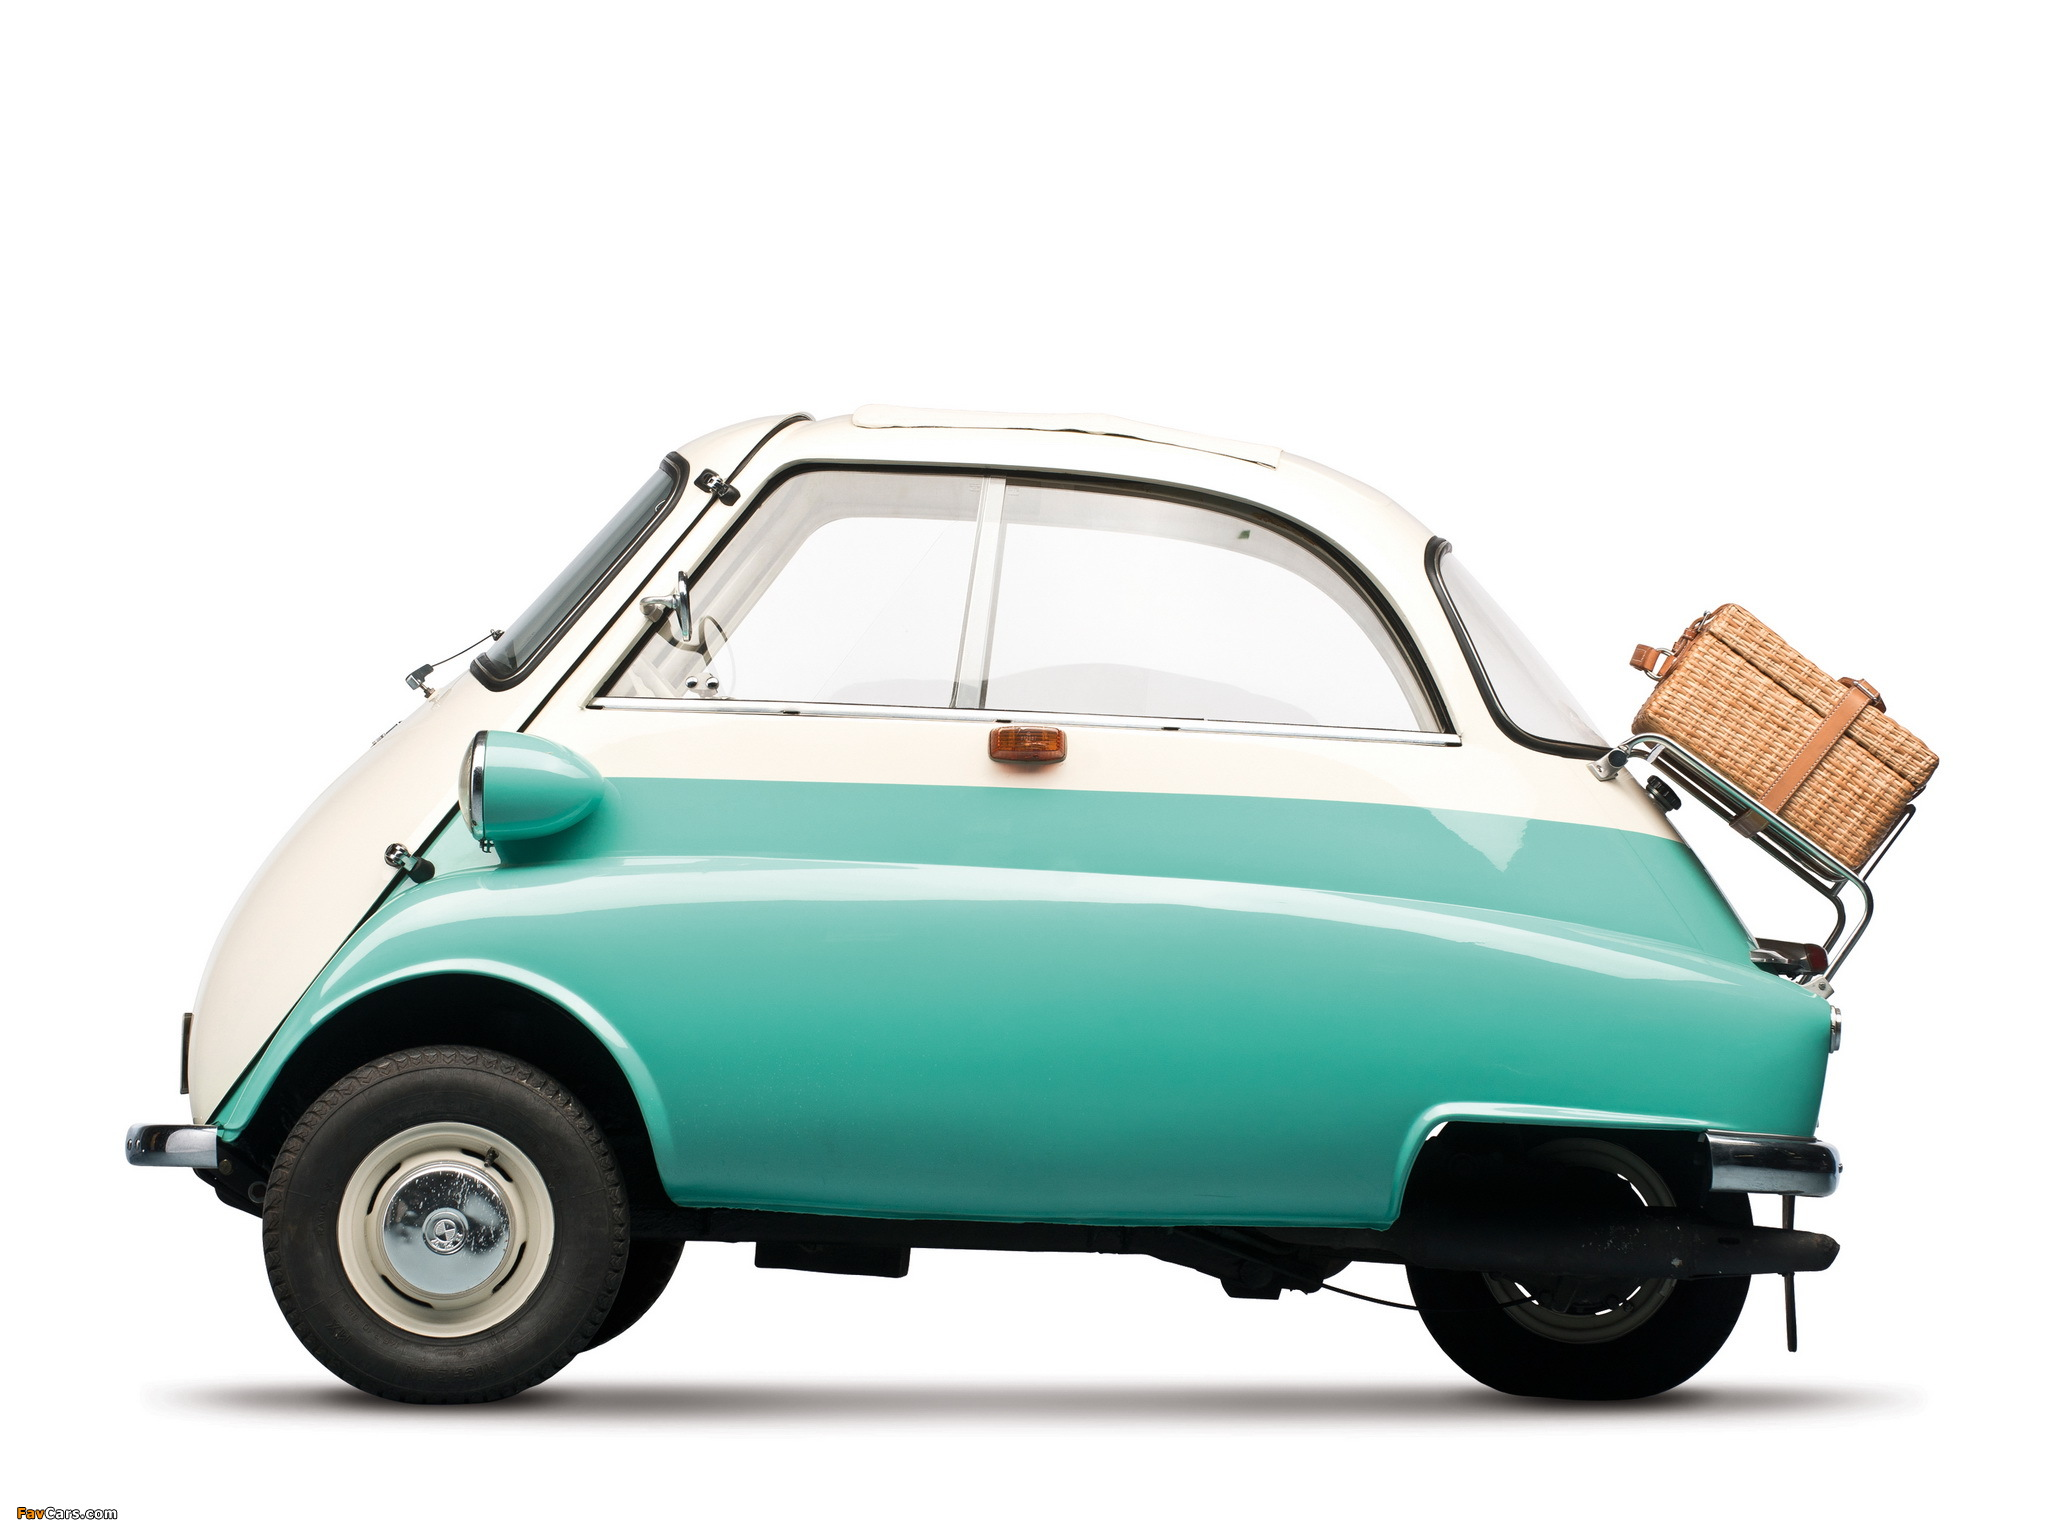 Bmw Isetta Picture Photos 1955 2 1600x Favcars With A Corvair Engi Engineswapdepot